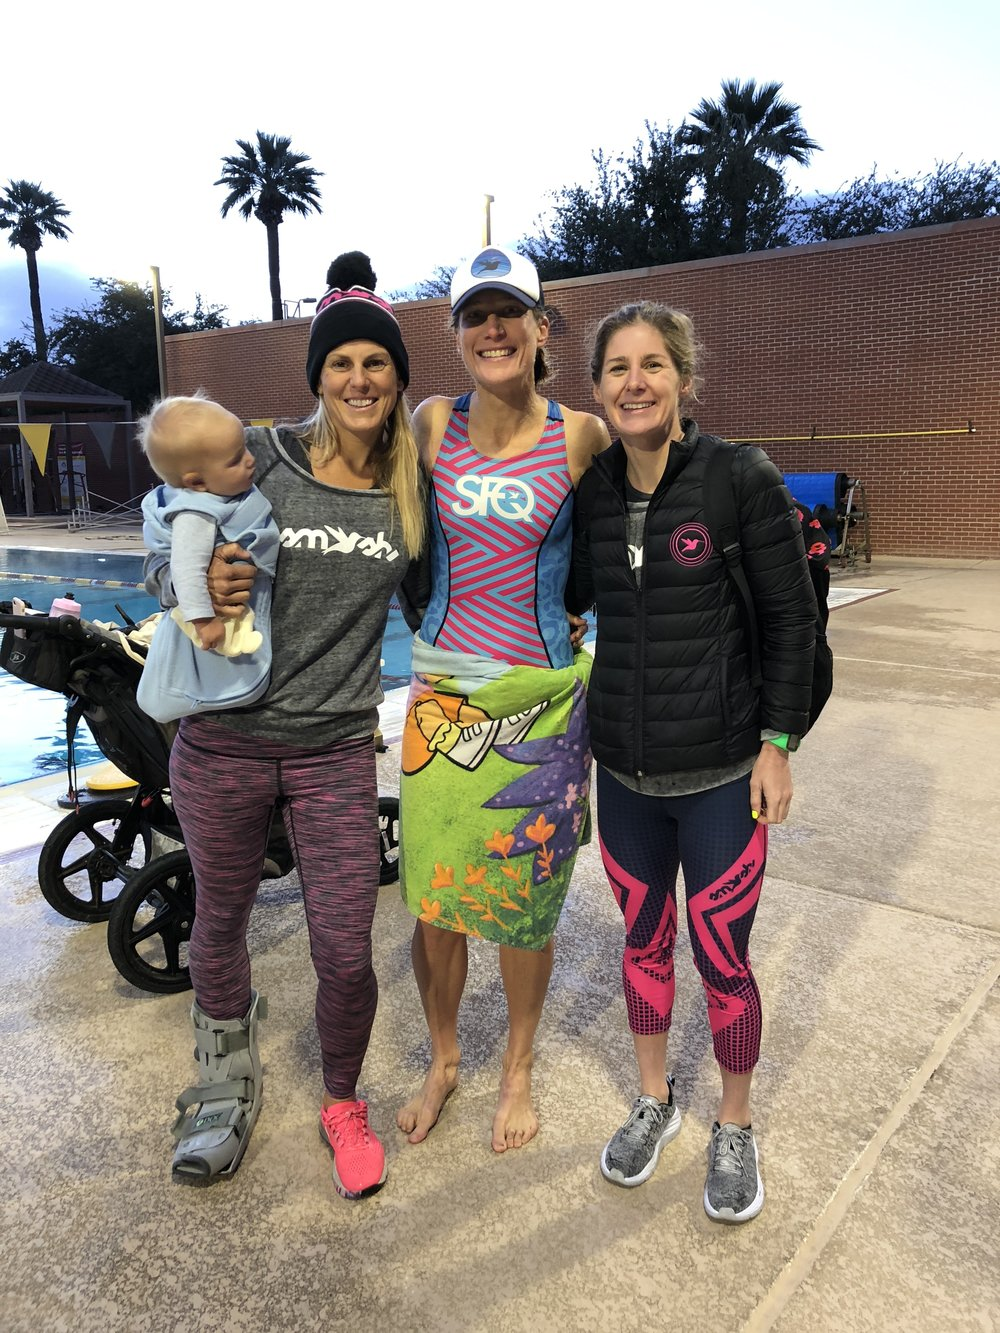 Post swim session, left to right, Hill and Hillary Biscay, yours truly, and Haley Chura.